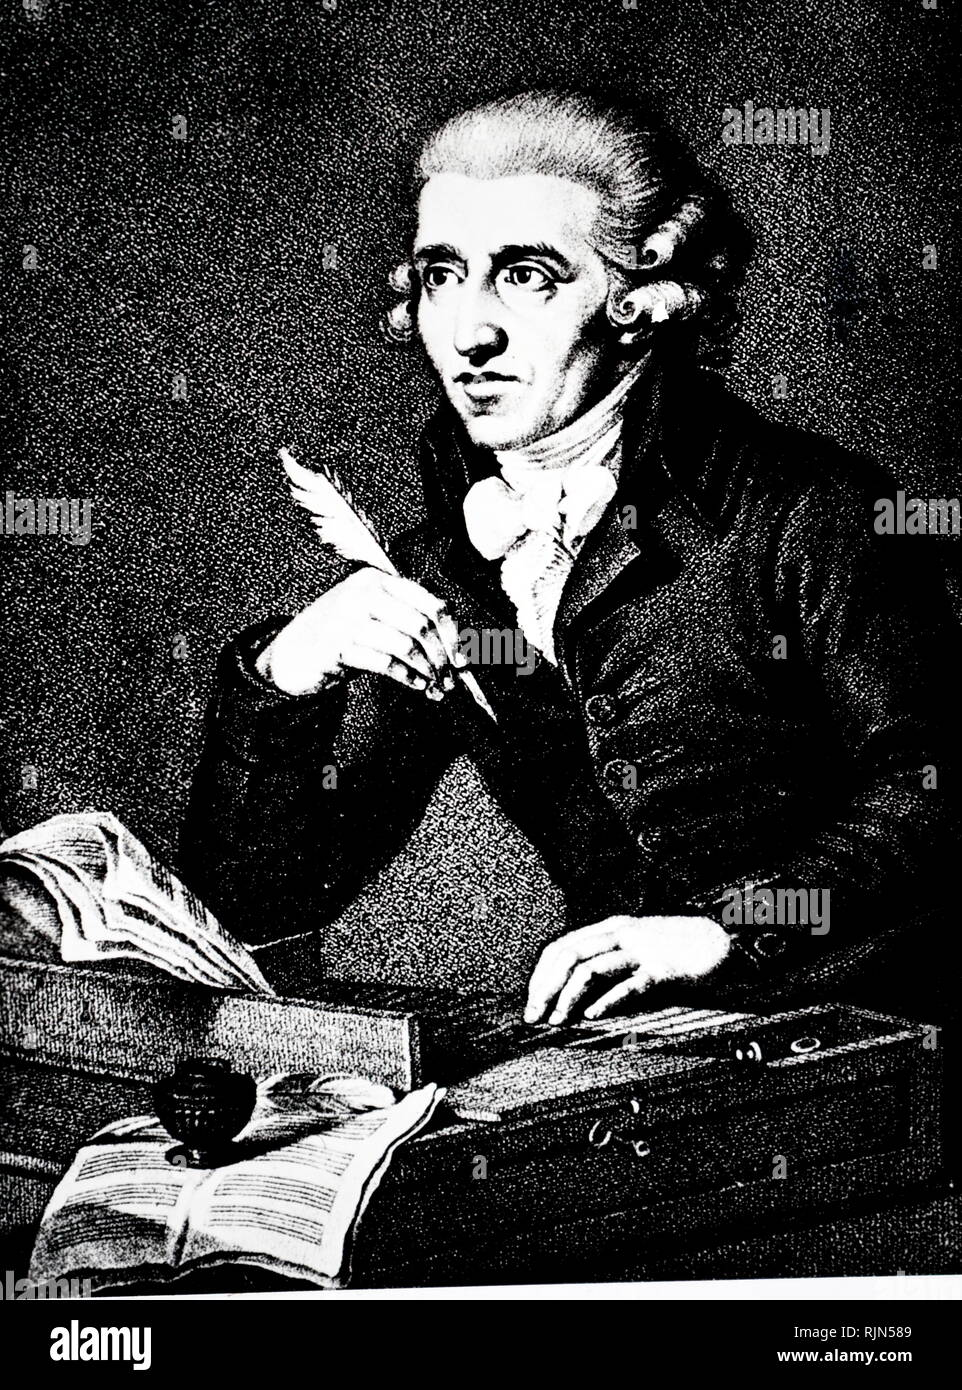 Illustration showing Joseph Haydn (1732 - 1809); Austrian composer of the Classical period. He was instrumental in the development of chamber music such as the piano trio. - Stock Image